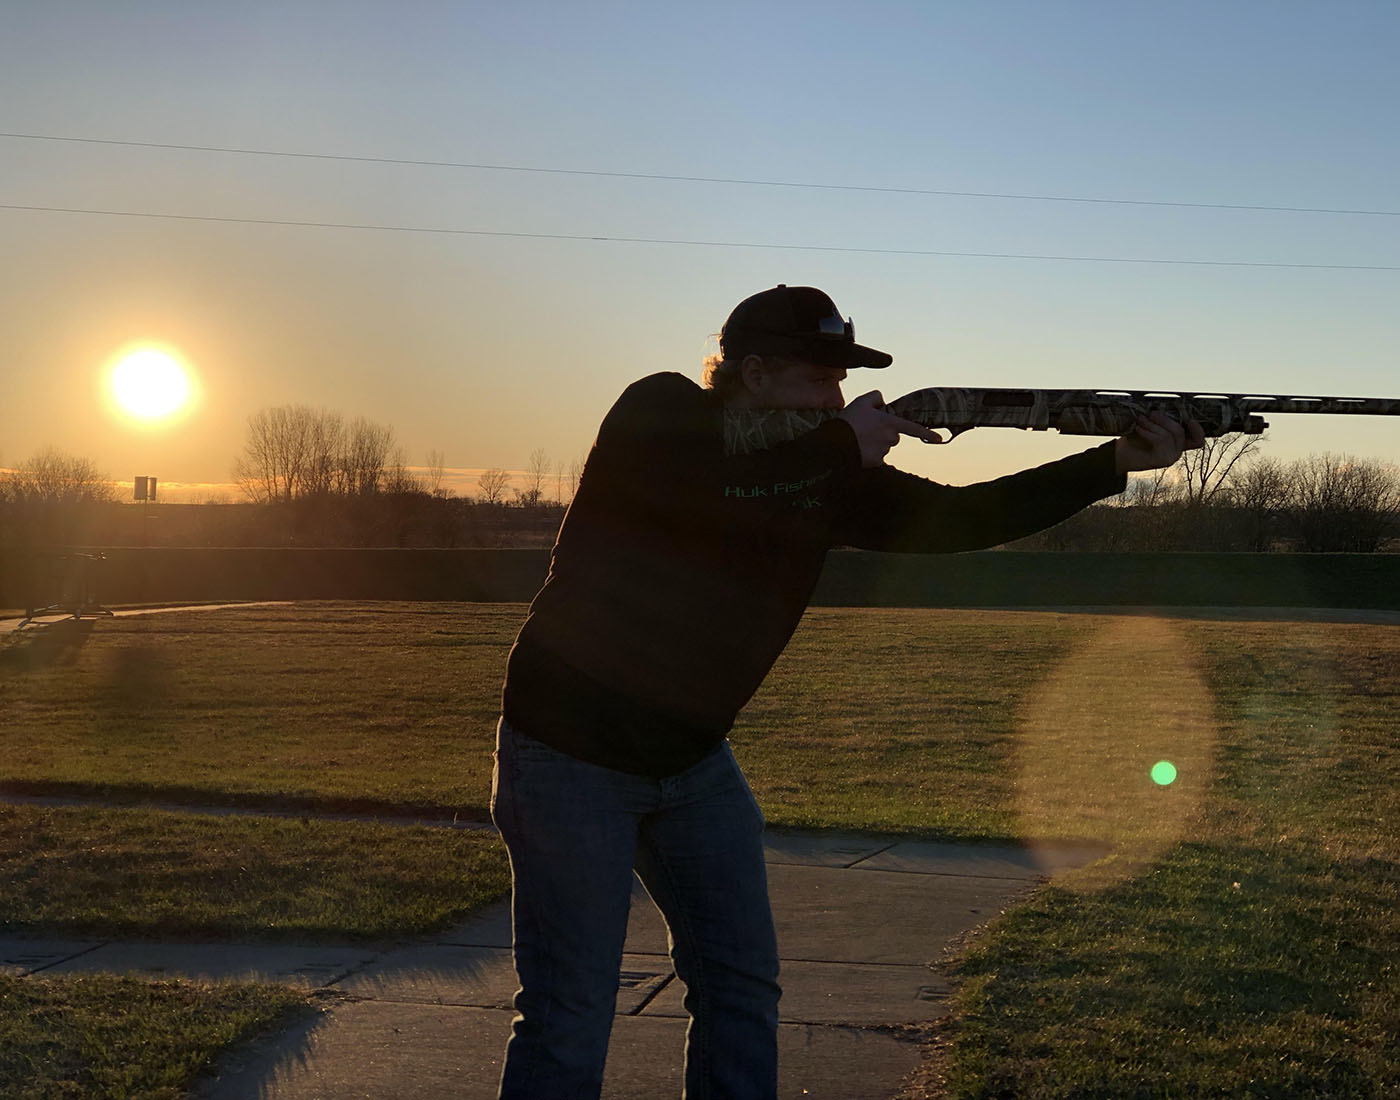 Besides football and lacrosse, Joe Edel is also a captain for the Owatonna Trapshooting Club